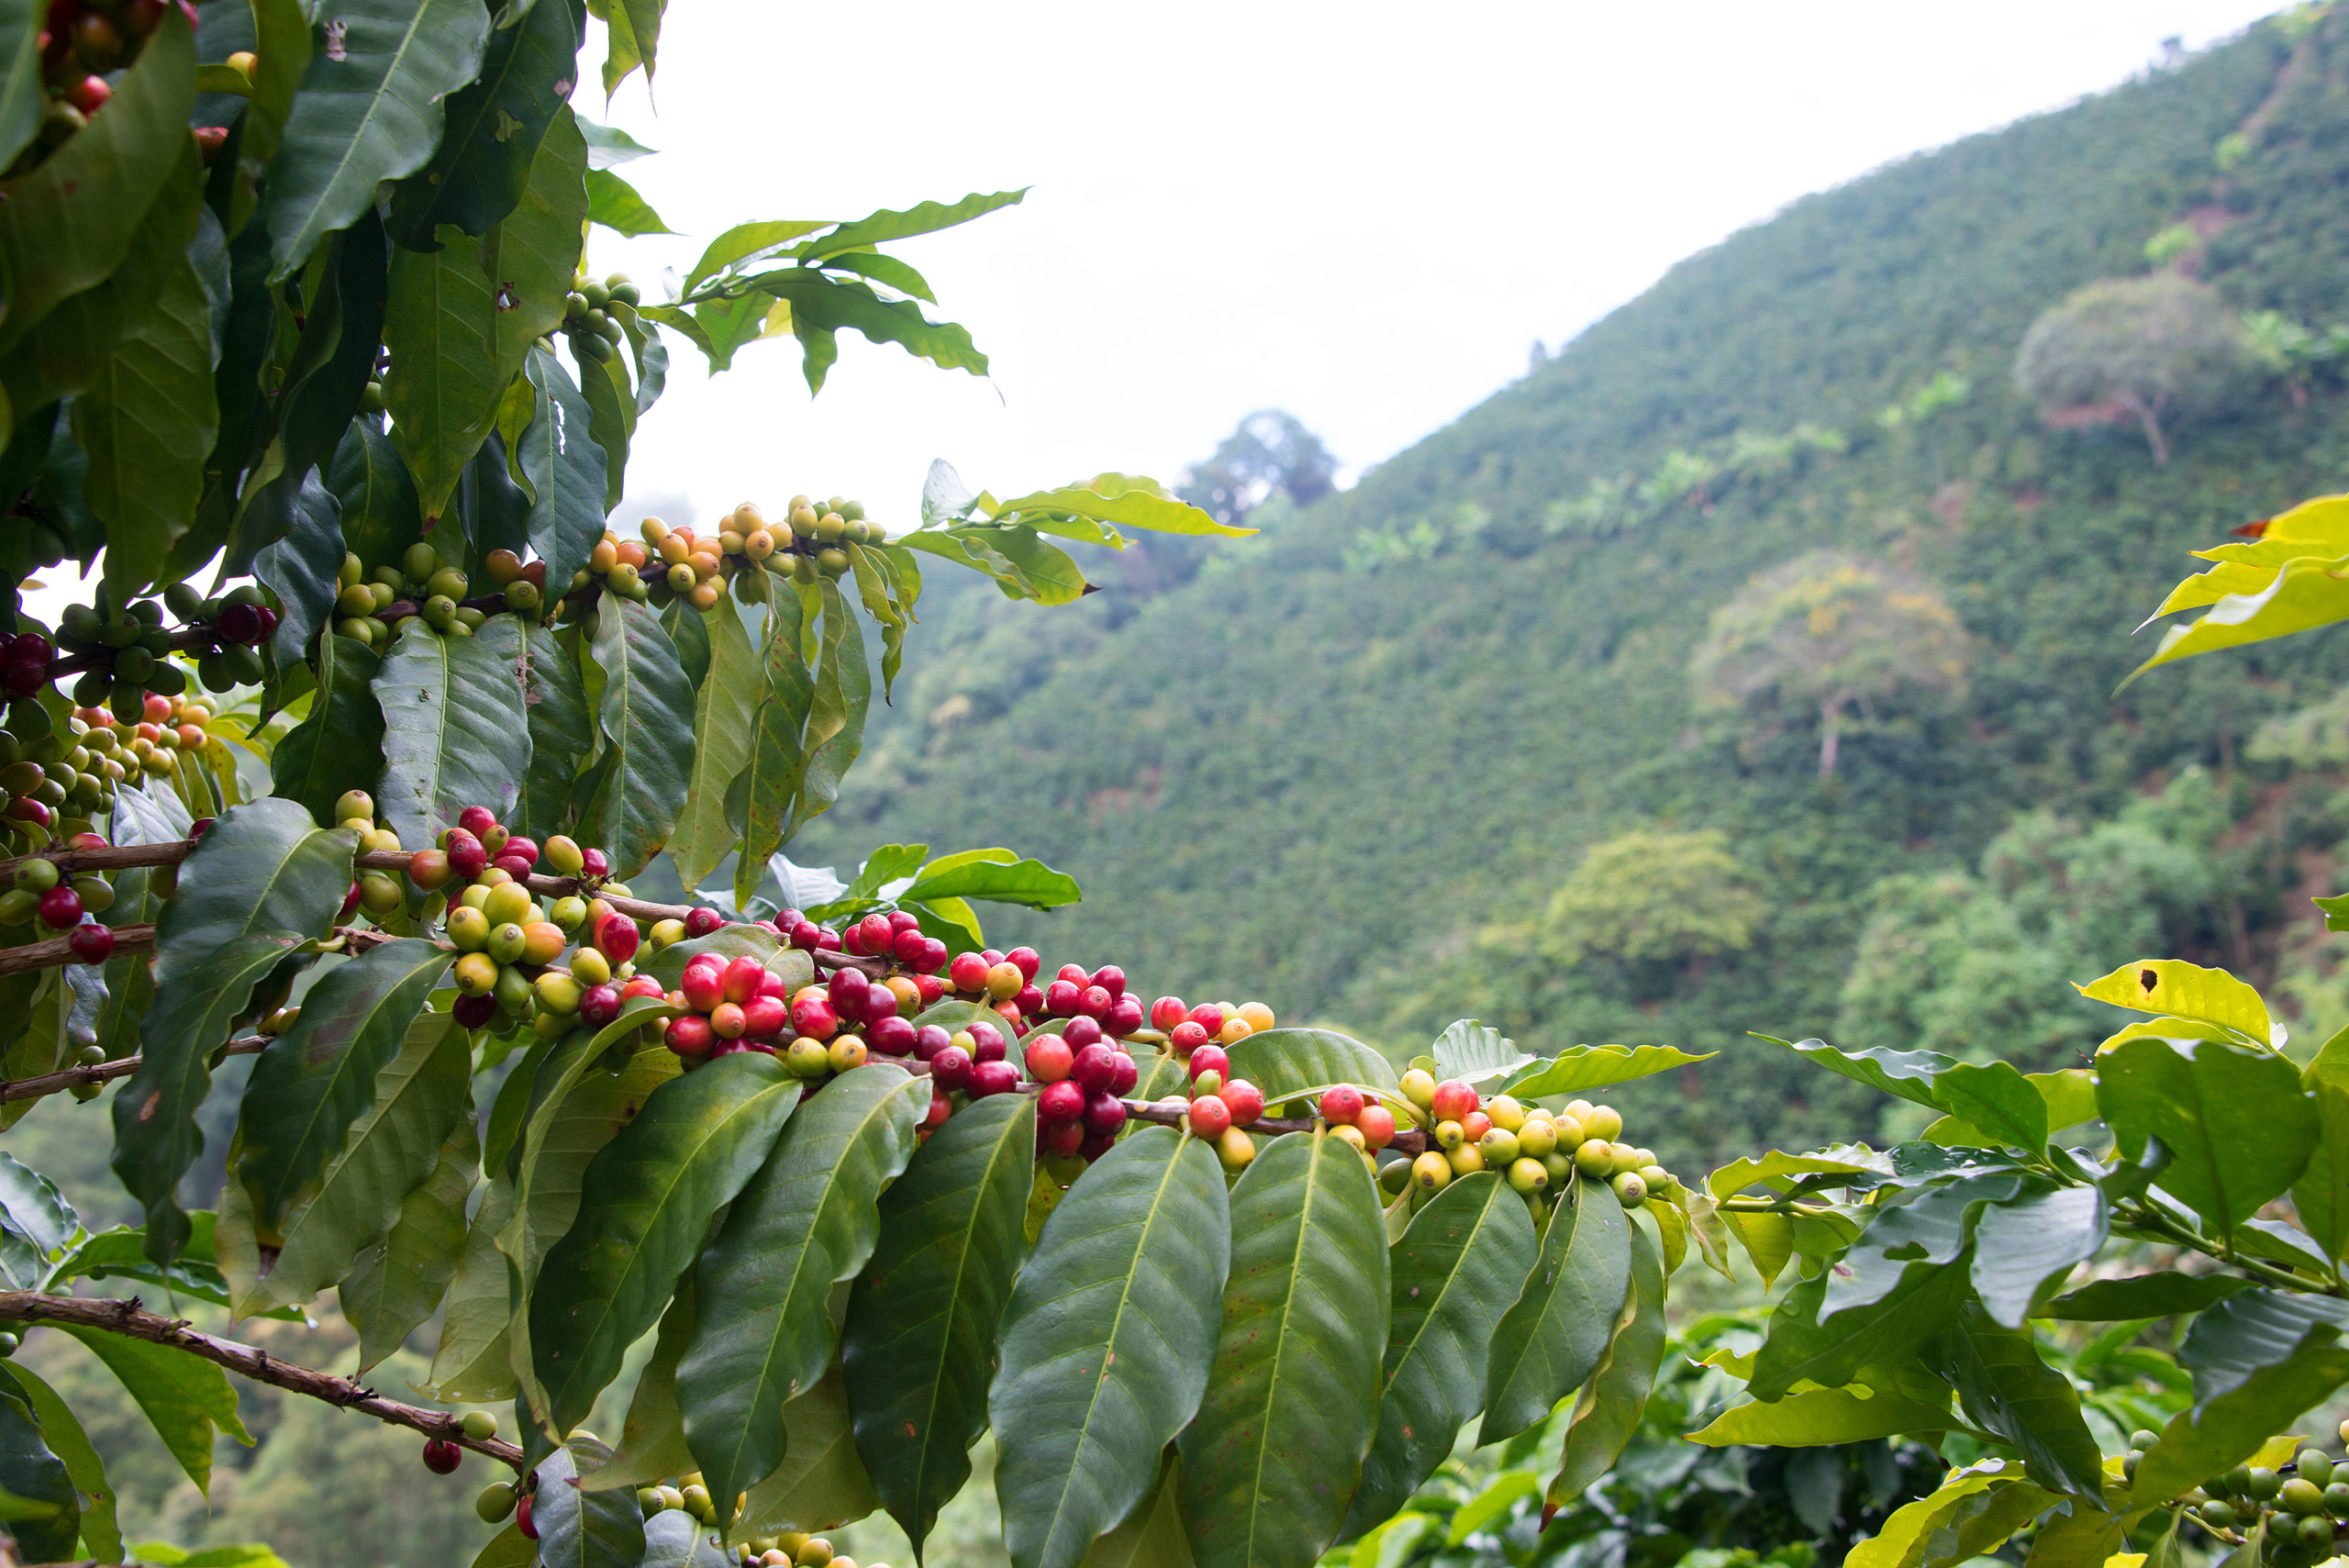 Red coffee cherries and coffee plant